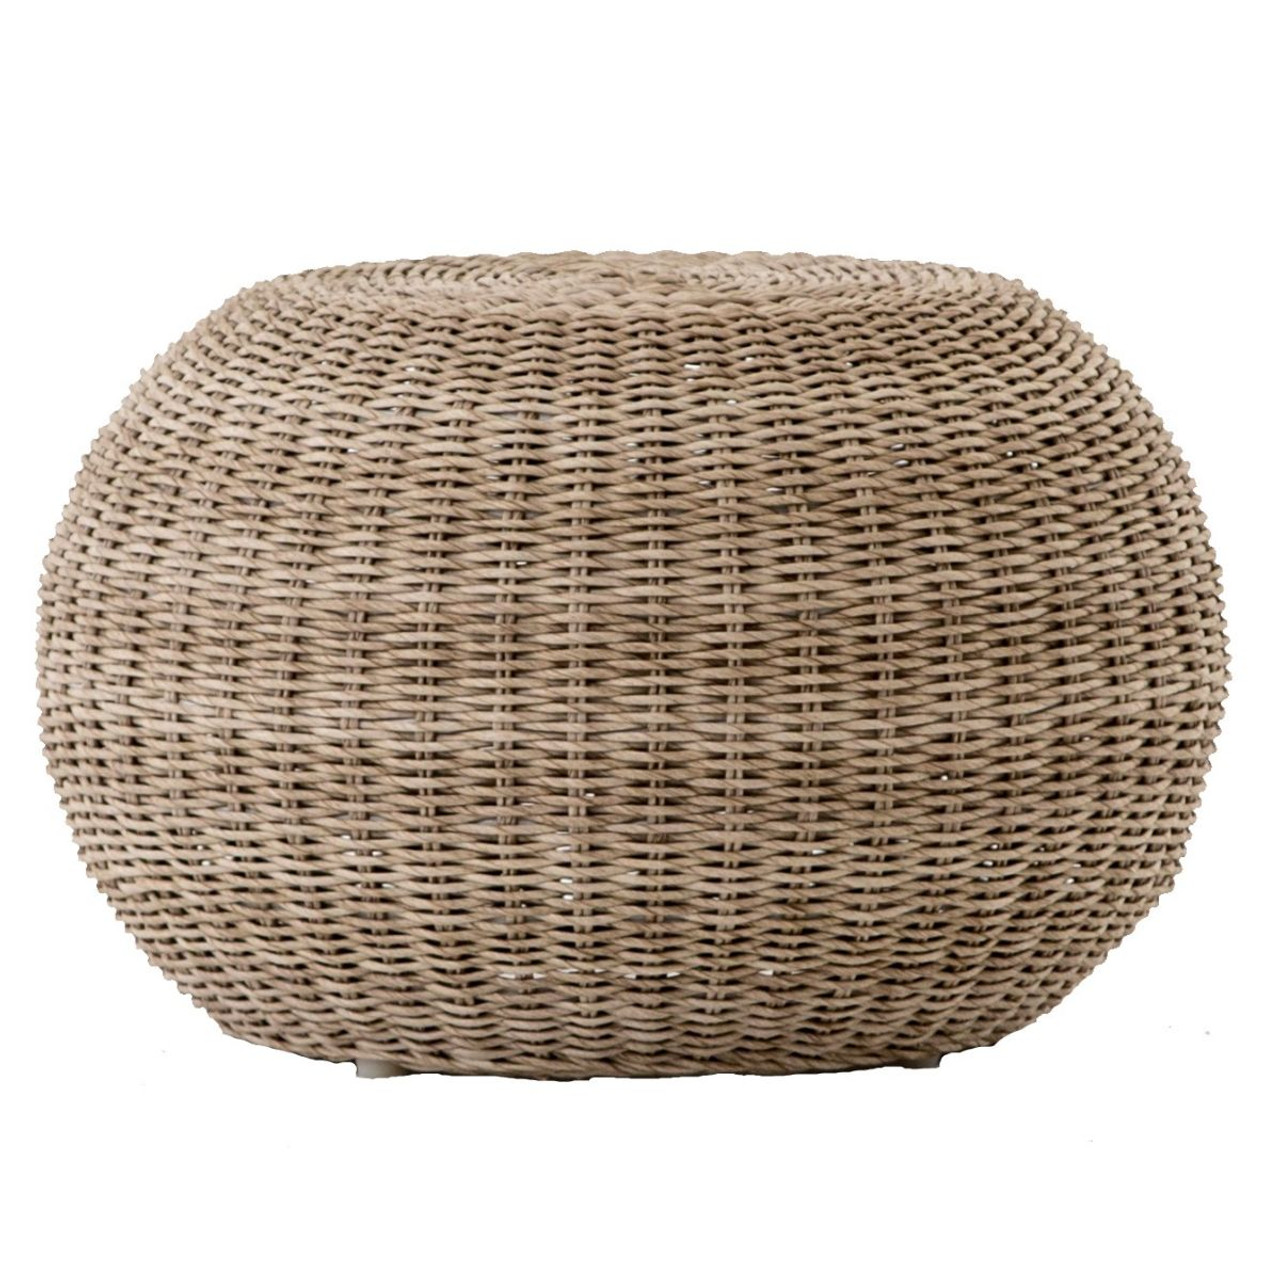 - Pascal Vintage White Woven Wicker Round Stool Ottoman Zin Home